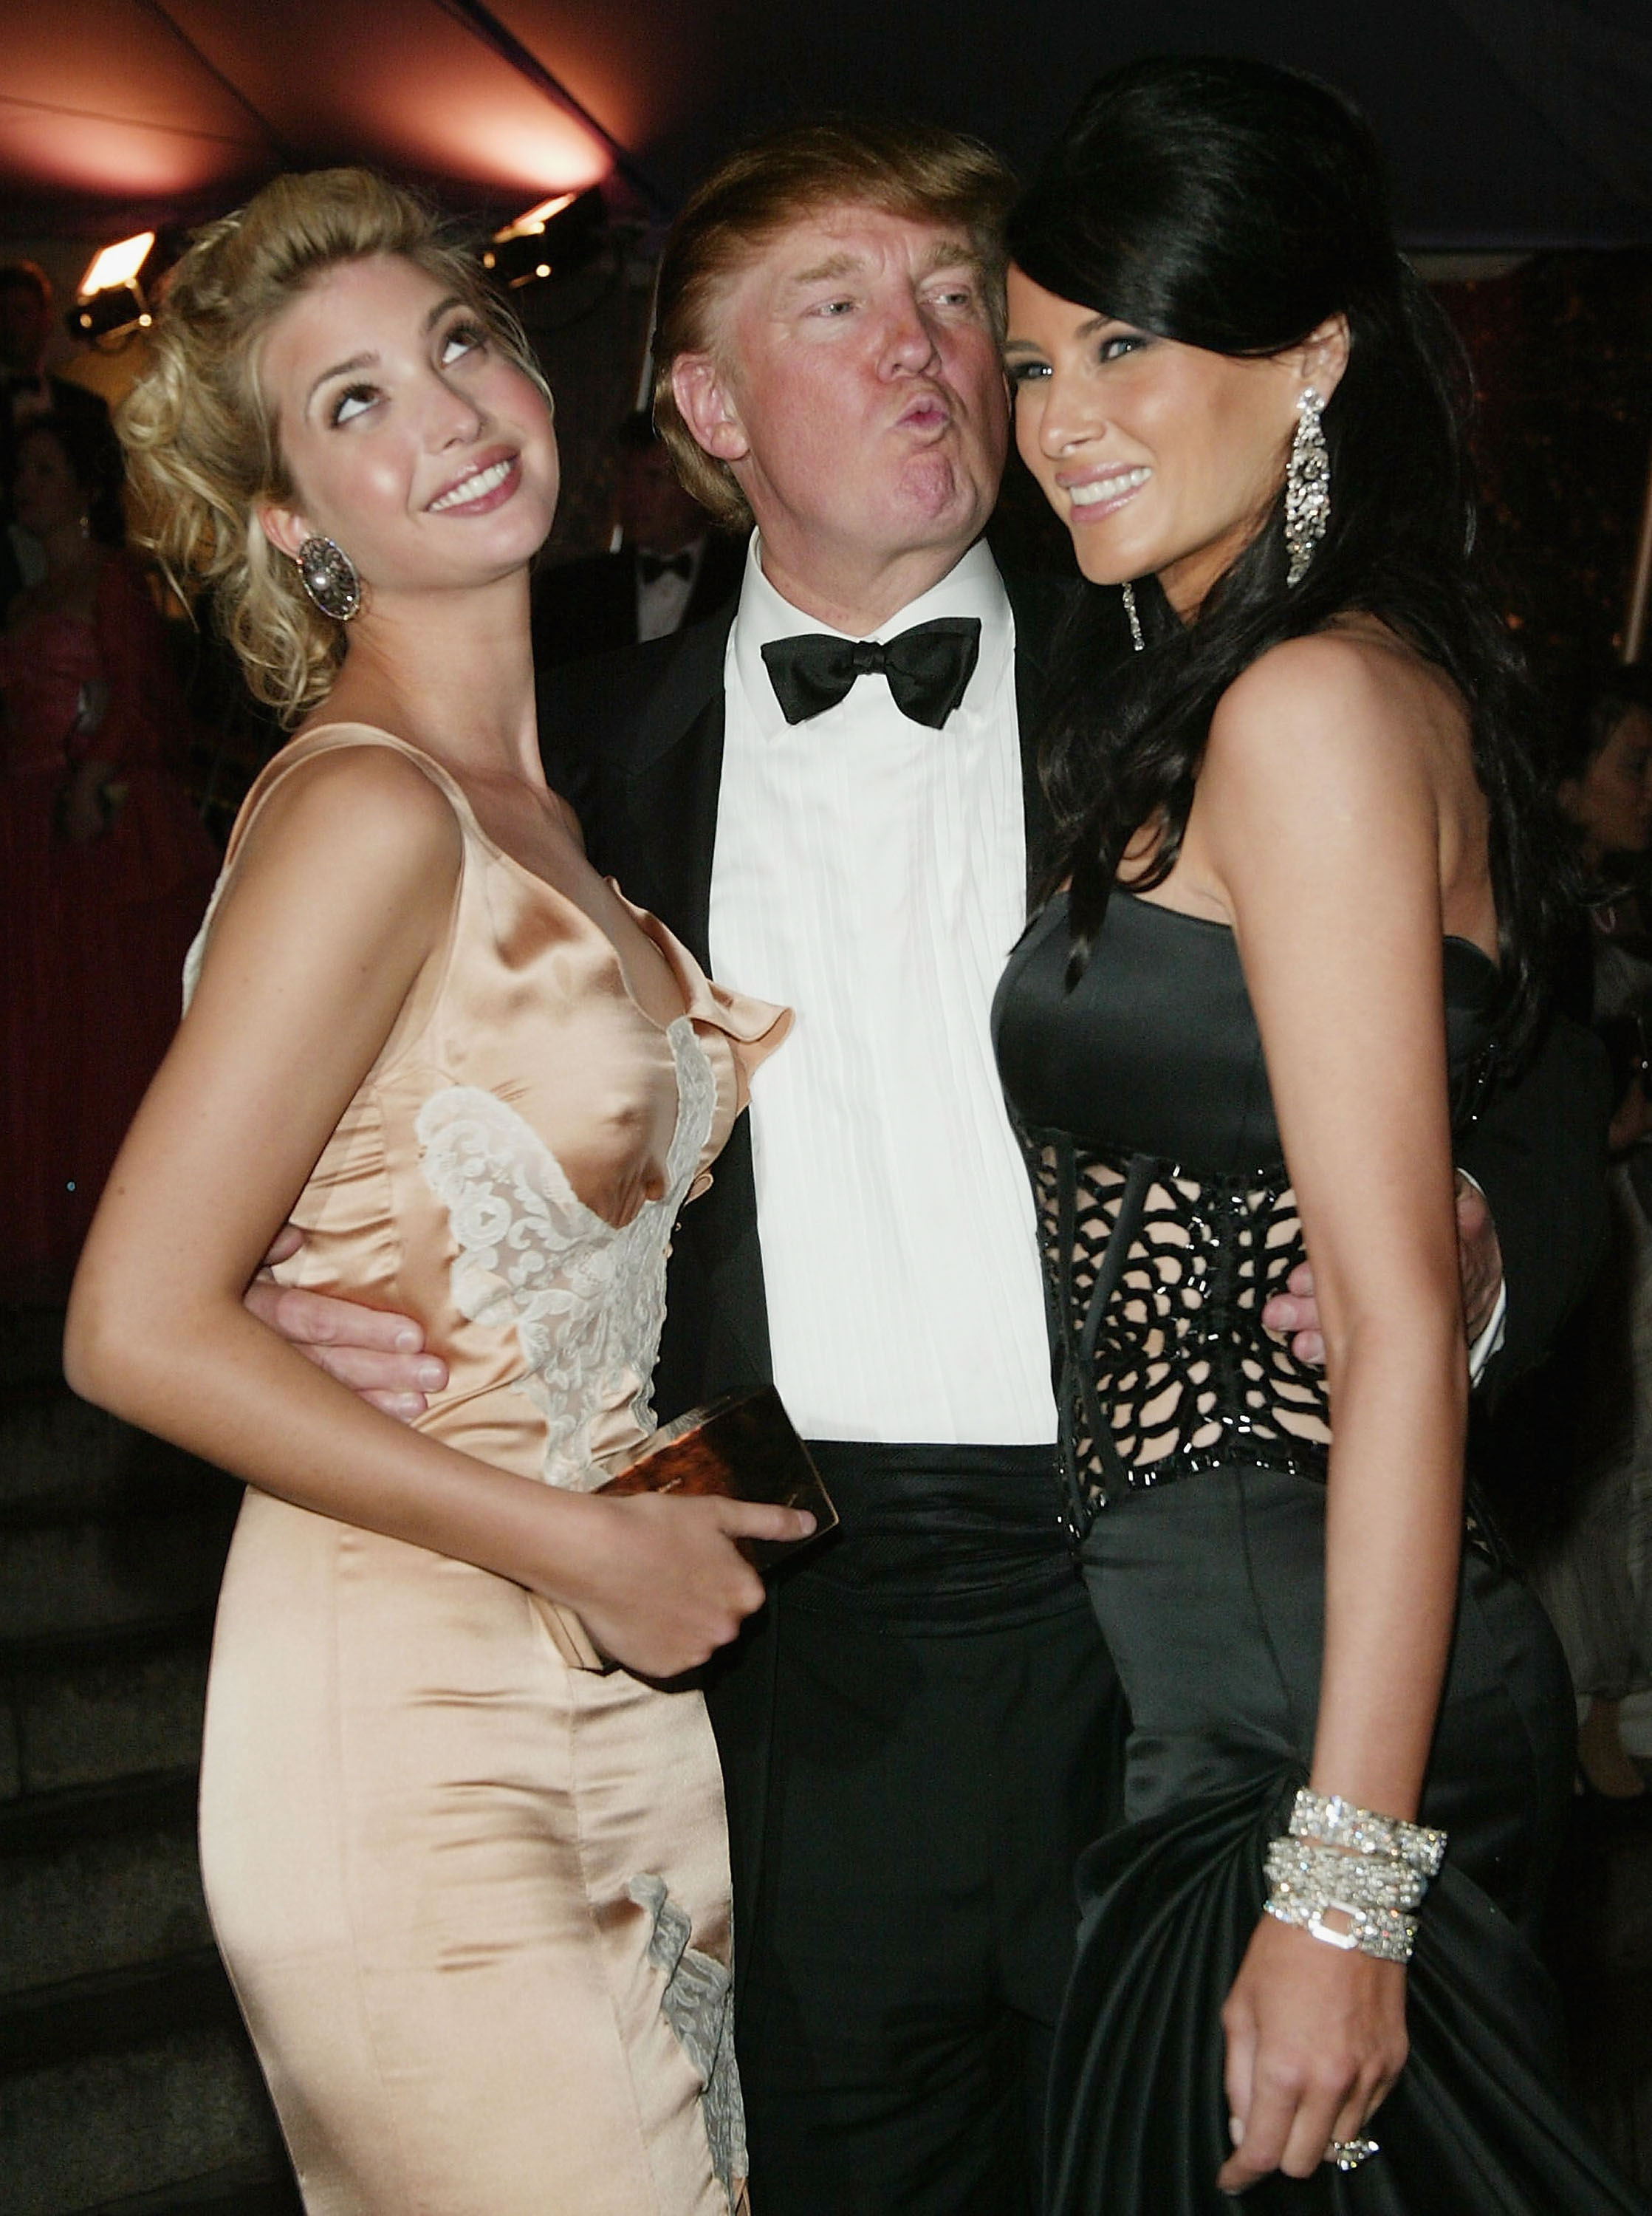 Donald Trump and his daughter Ivanka (left) and girlfriend Melania Knauss (right) attend the 'Dangerous Liaisons: Fashion and Furniture in the 18th Century' Costume Institute benefit gala on April 26, 2004 at the Metropolitan Museum of Art, in New York Ci